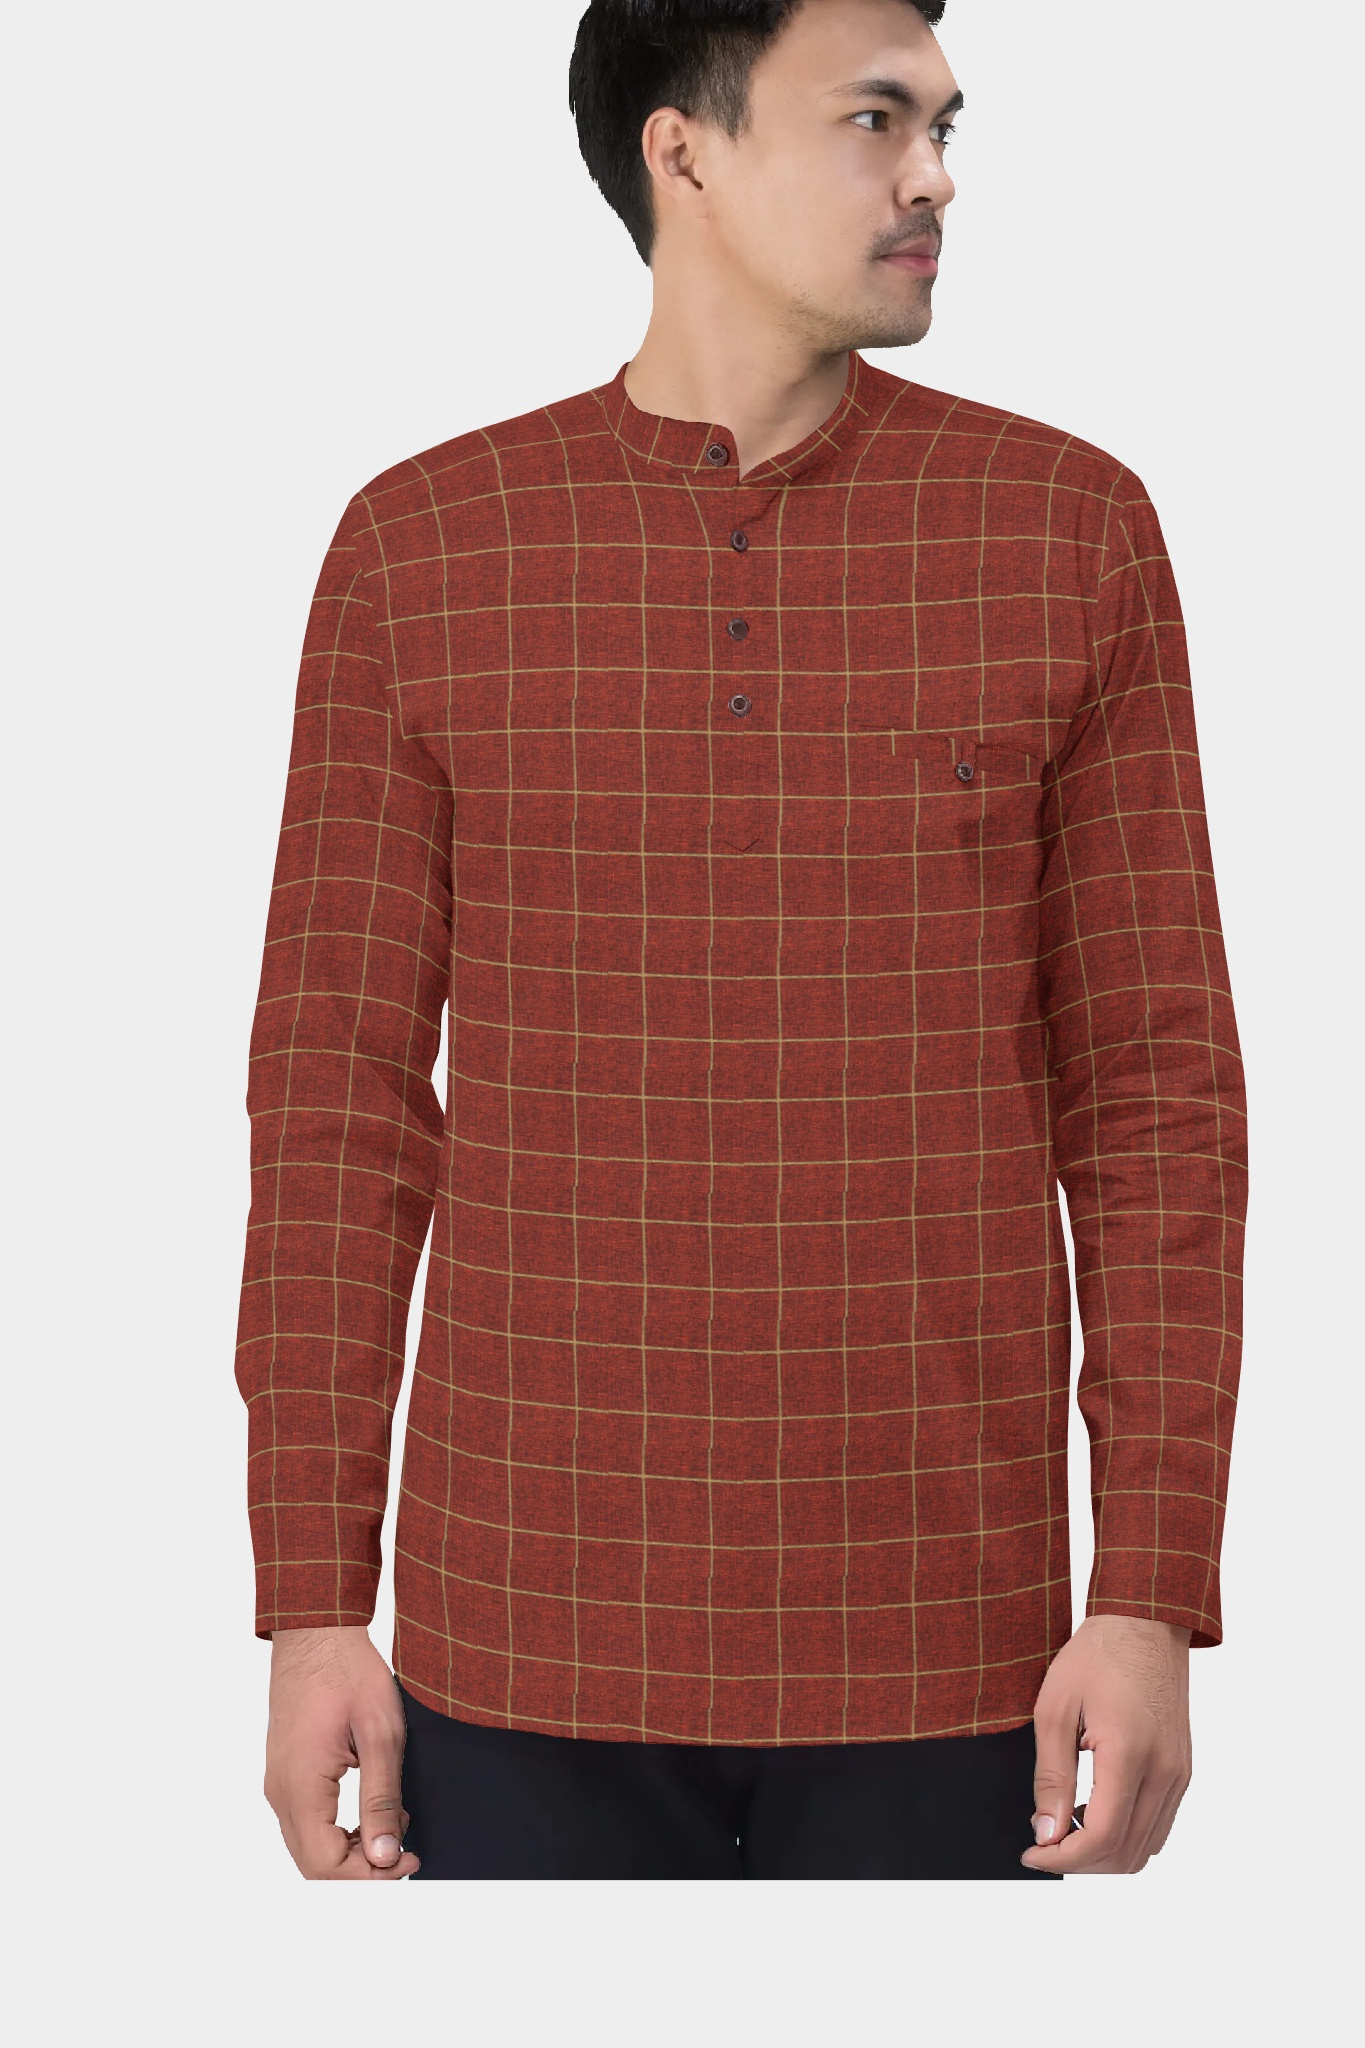 /home/customer/www/fabartcraft.com/public_html/uploadshttps://www.shopolics.com/uploads/images/medium/Maroon-Golden-Cotton-Short-Kurta-35455.jpg